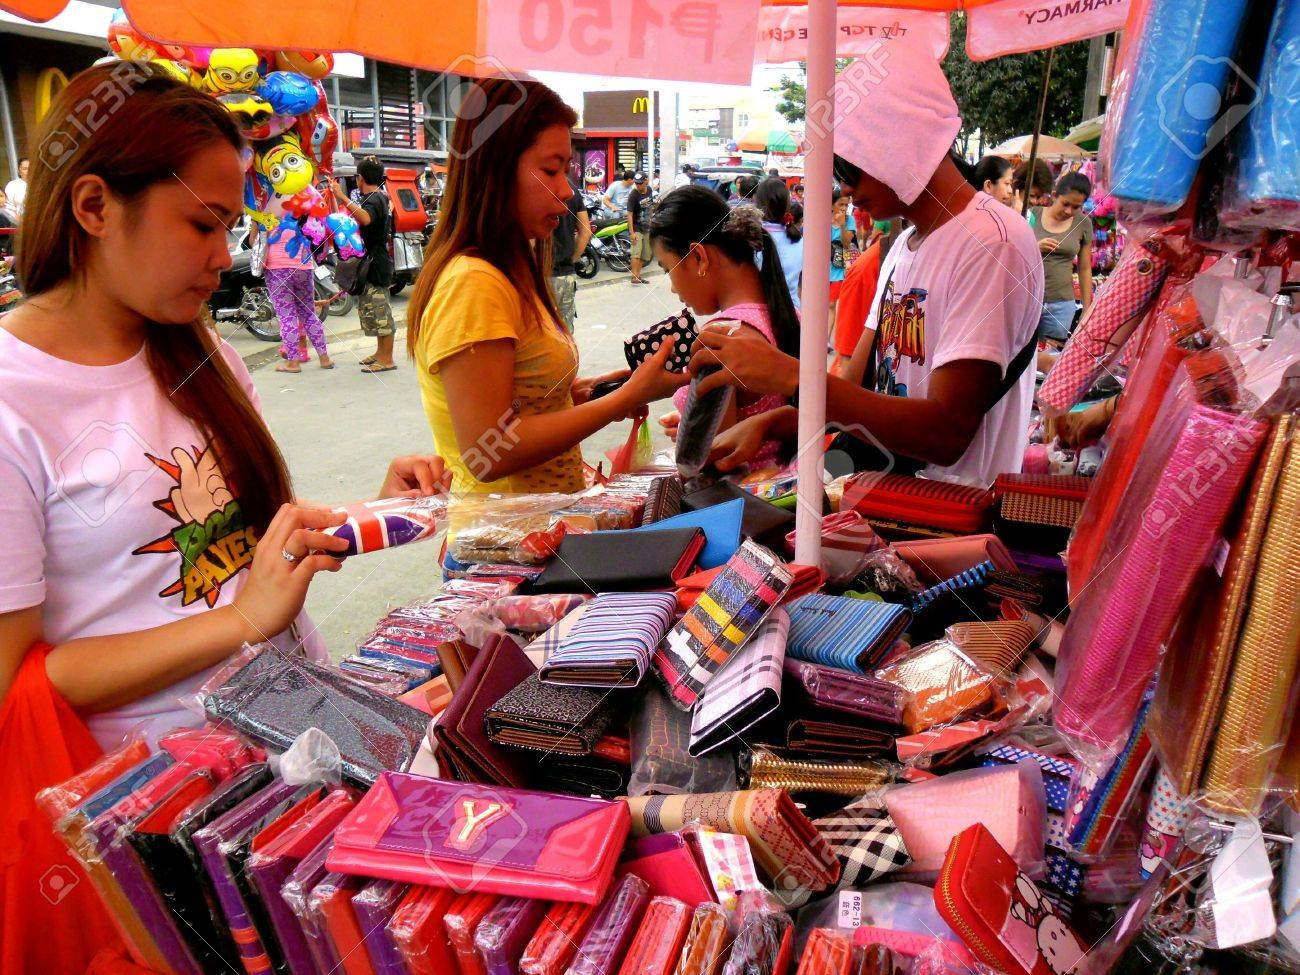 Vendor selling wallets in a market in taytay rizal philippines